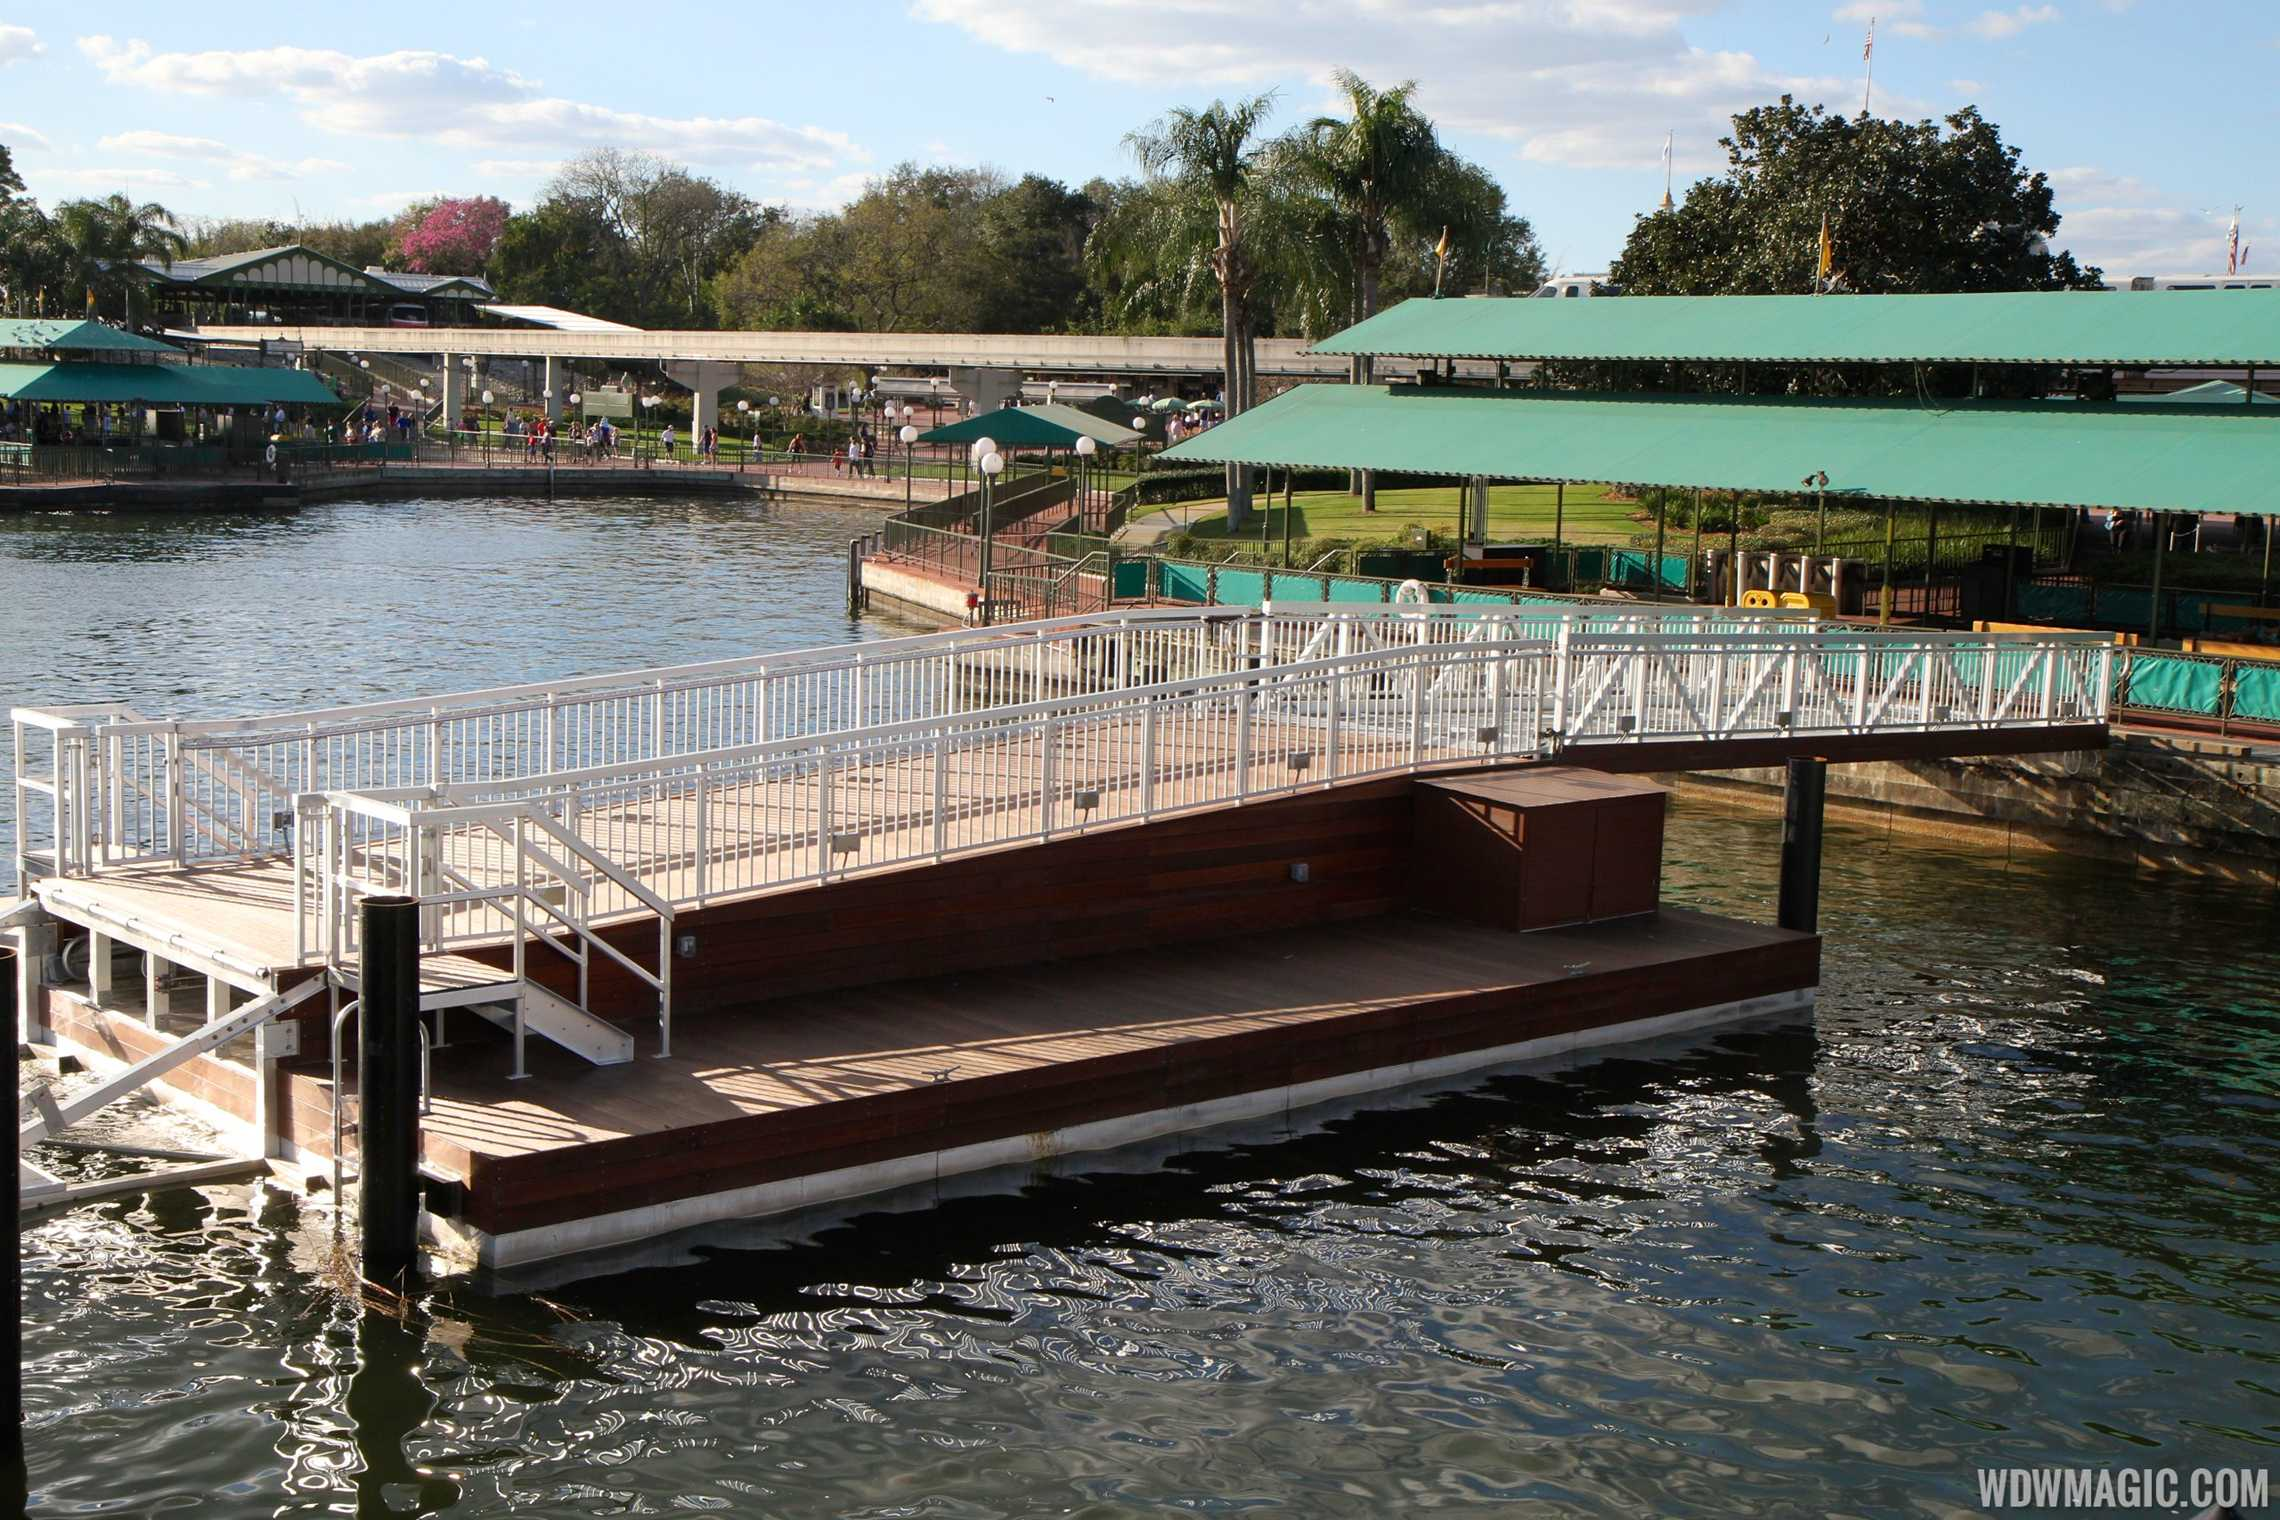 Second ferry boat dock at the Magic Kingdom